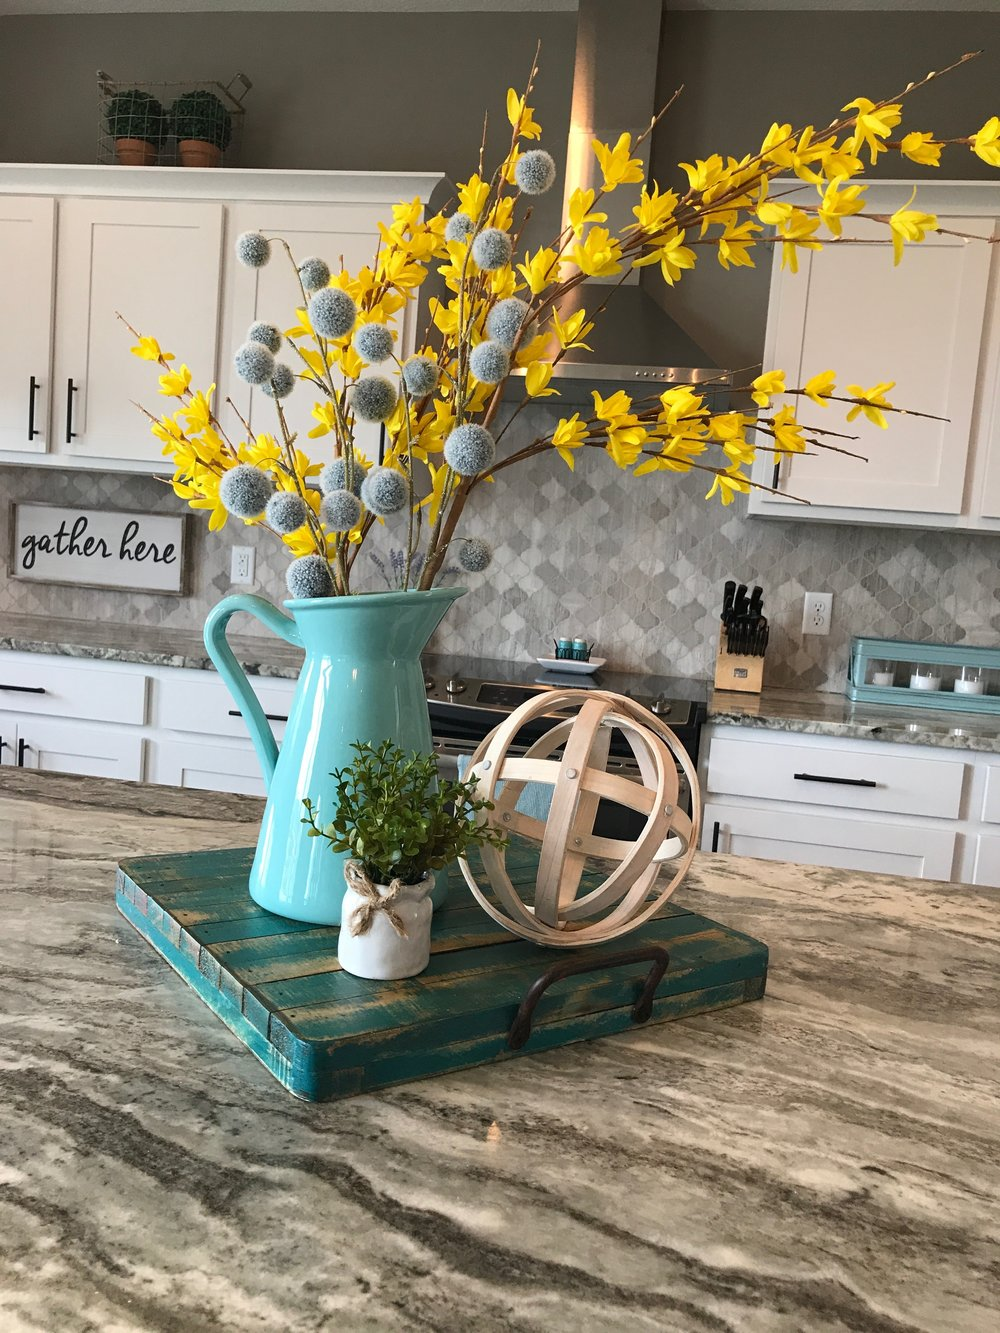 Kitchen vignette using a turquoise wooden tray, wood orb, small plant, a light turquoise pitcher filled with yellow floral stems, and blue billy buttons. RustopiaConsulting.com